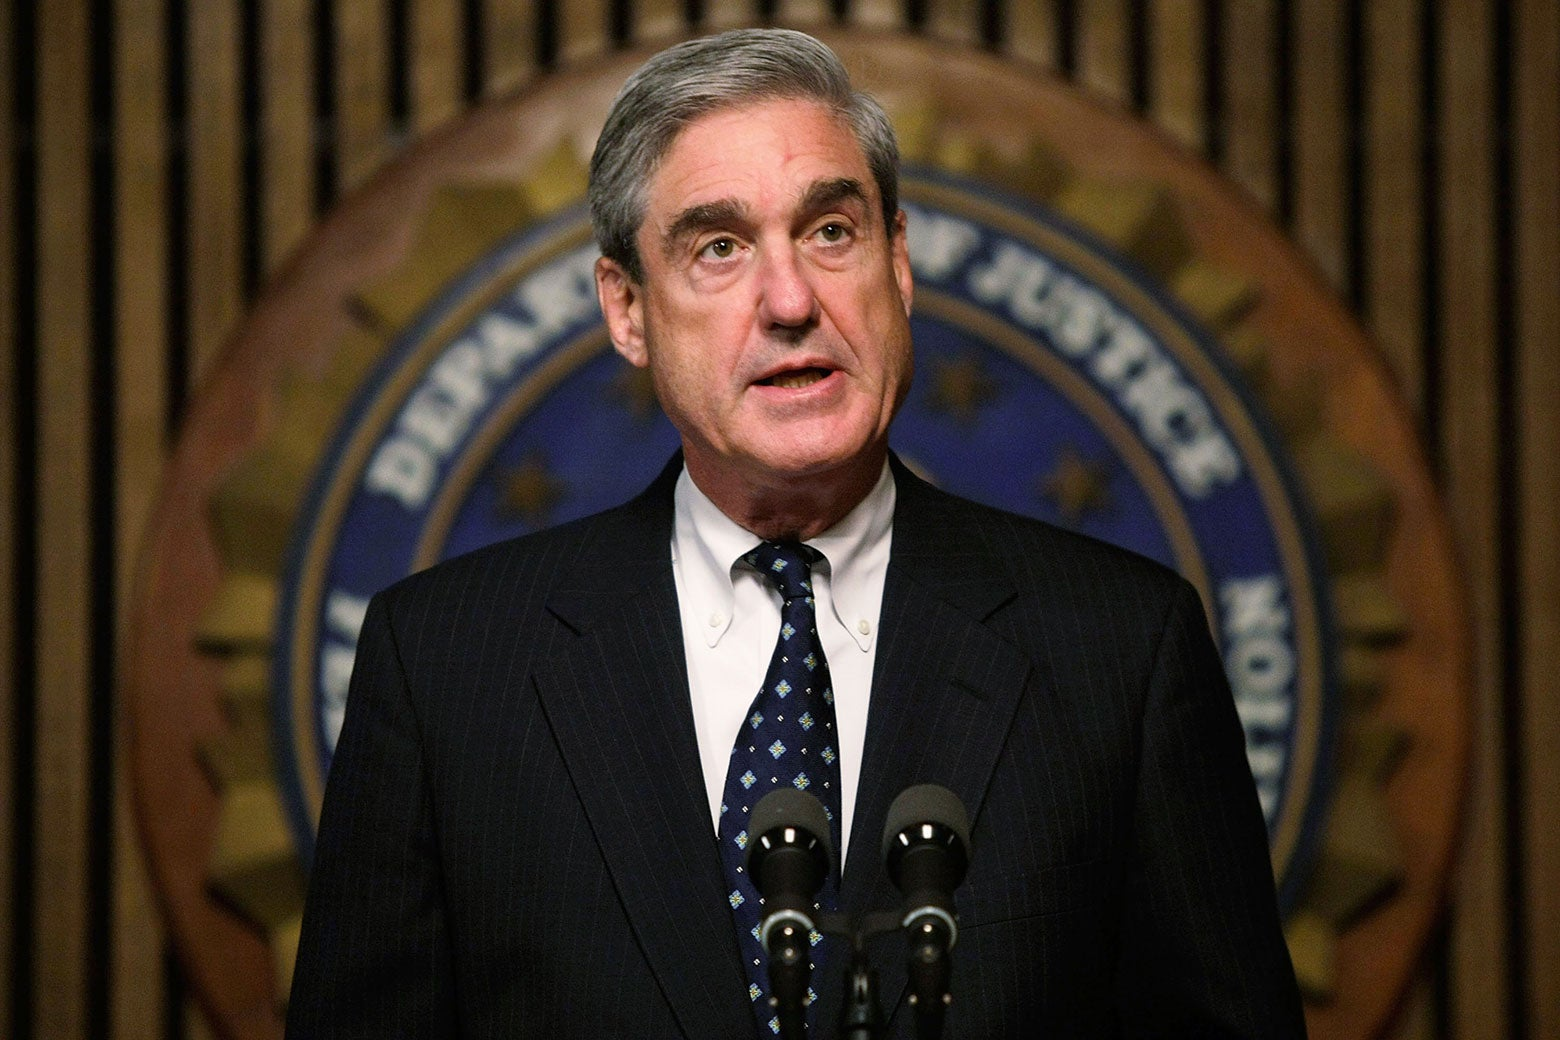 Robert Mueller, then director of the FBI, speaks during a news conference on June 25, 2008, in Washington.